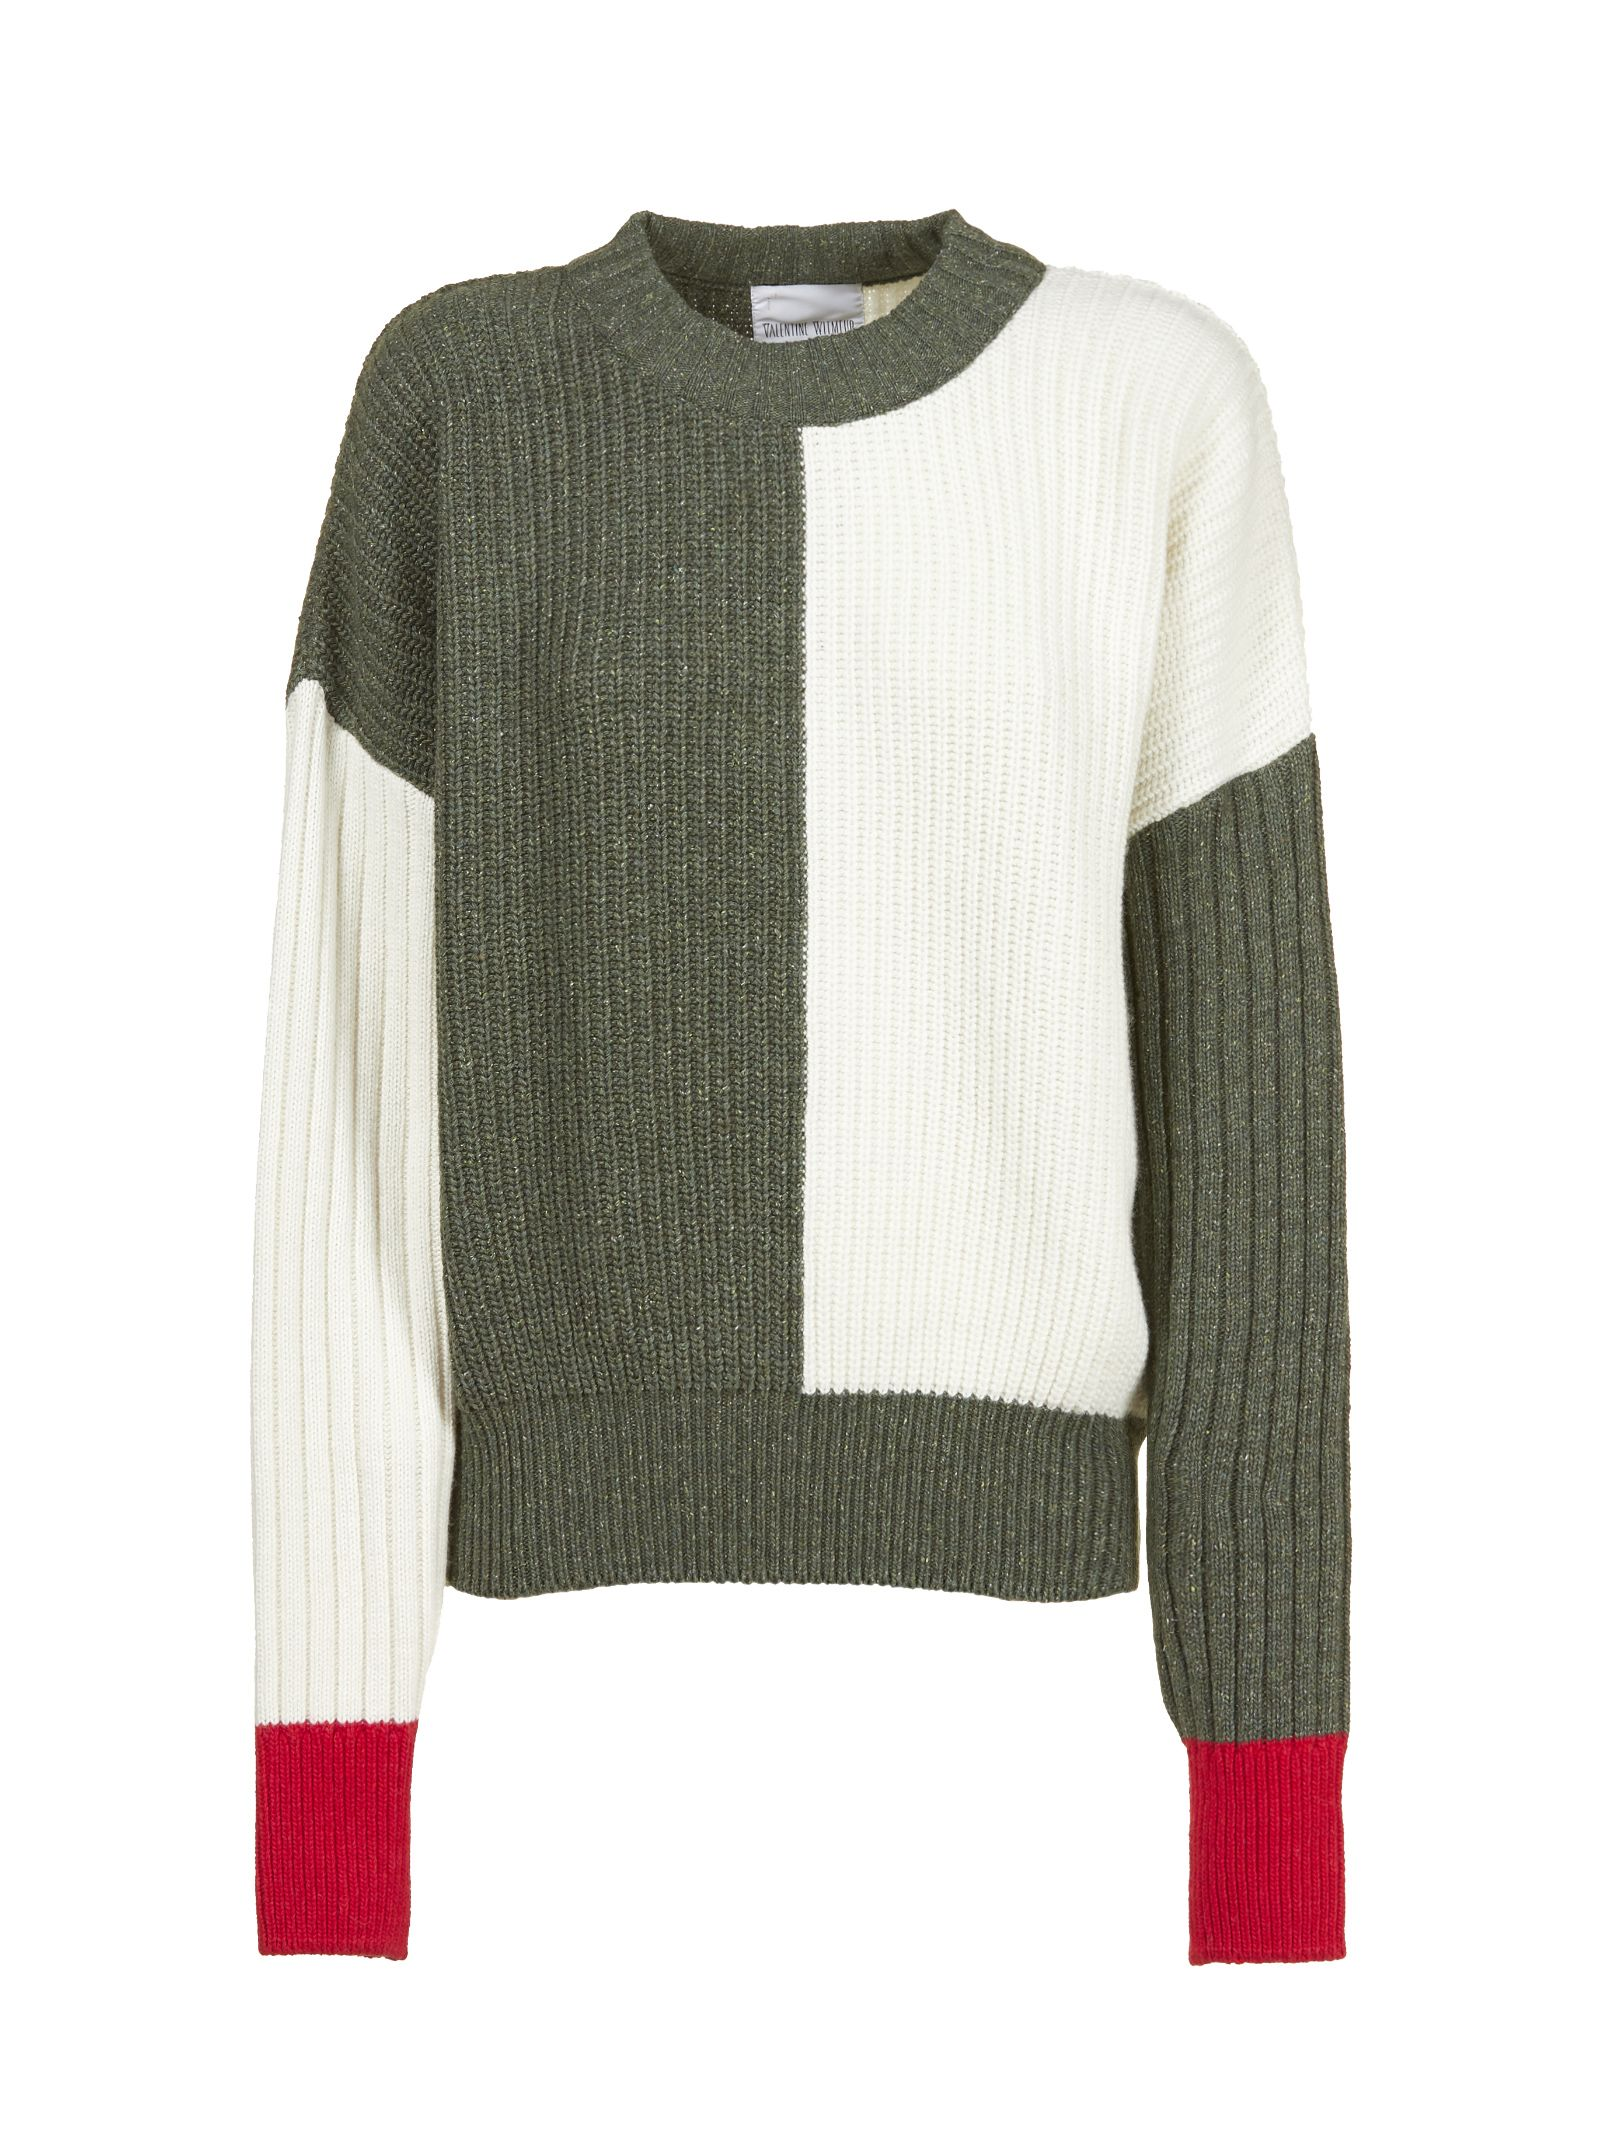 VALENTINE WITMEUR LAB Valentine Witmeur Fiftyish Ribbed Knit Sweater in Panna Verde Rosso